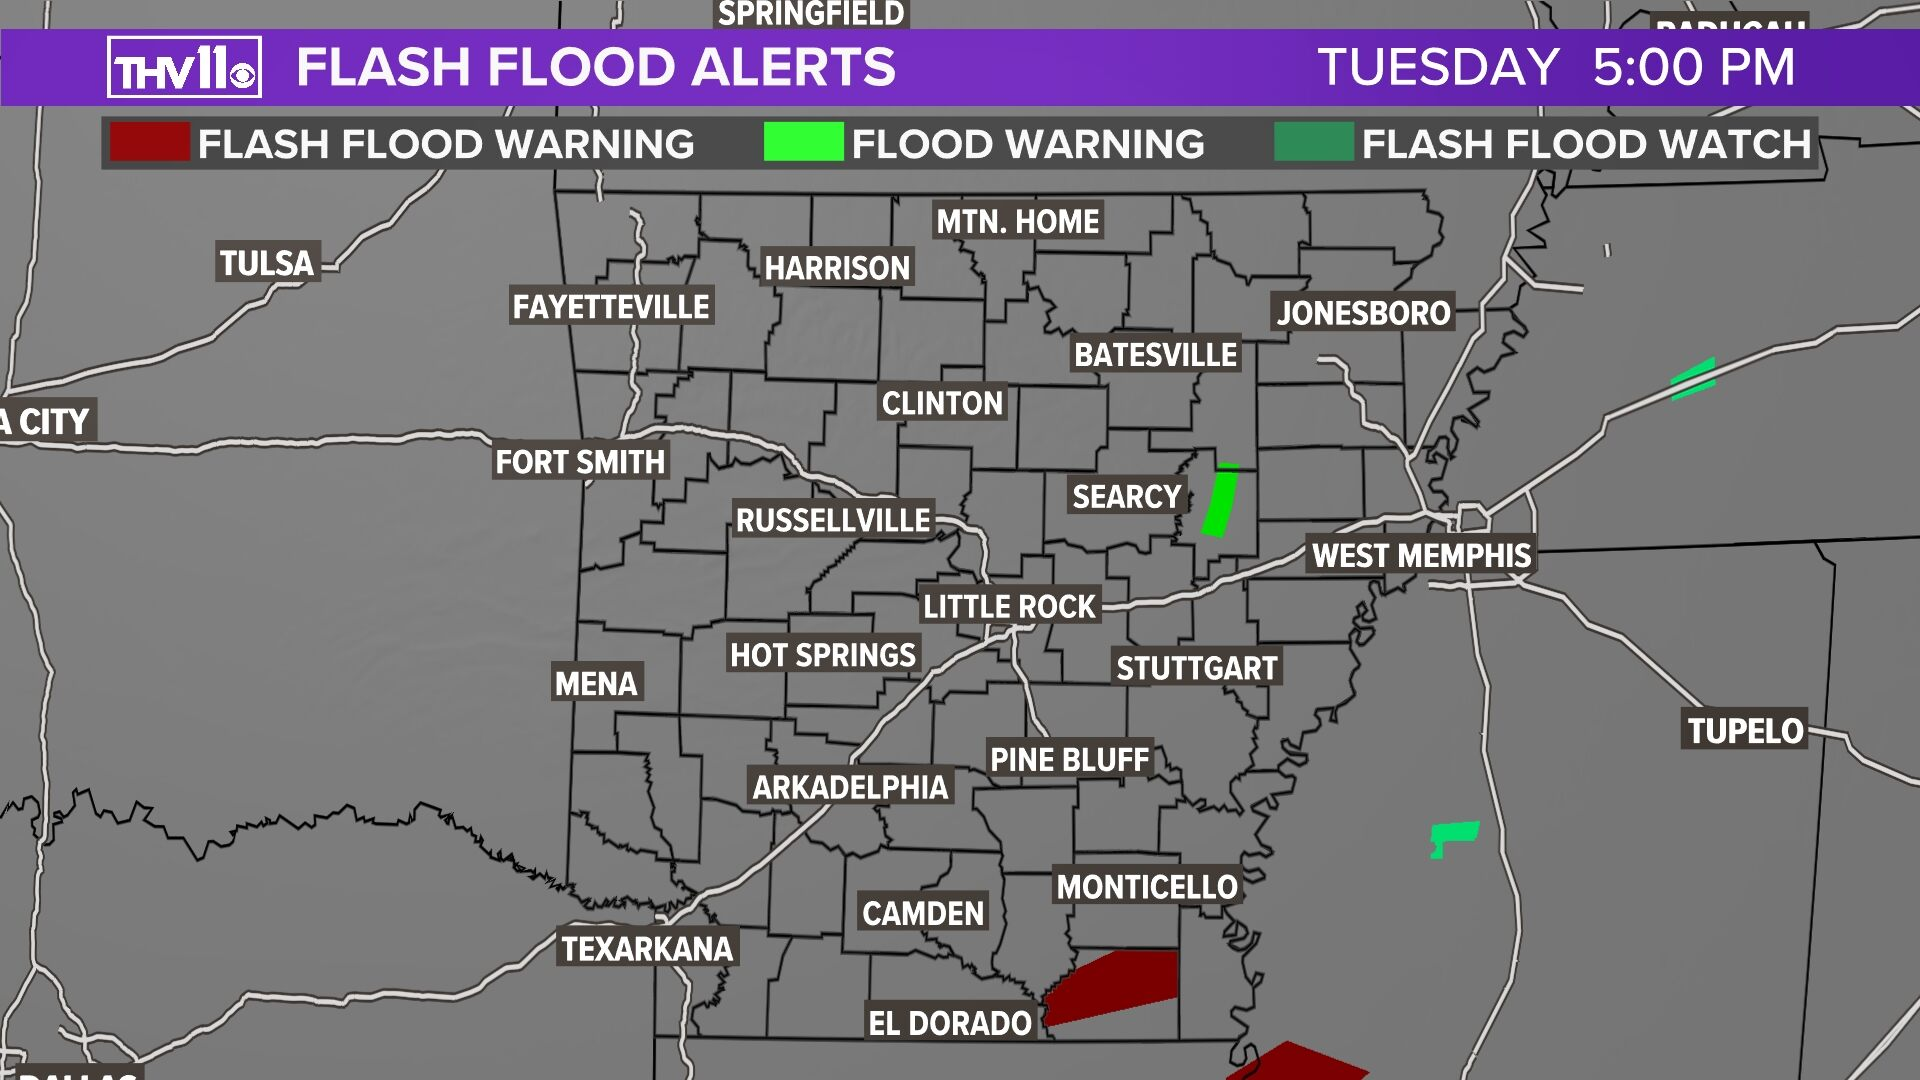 Flash Flood Watches-Warnings